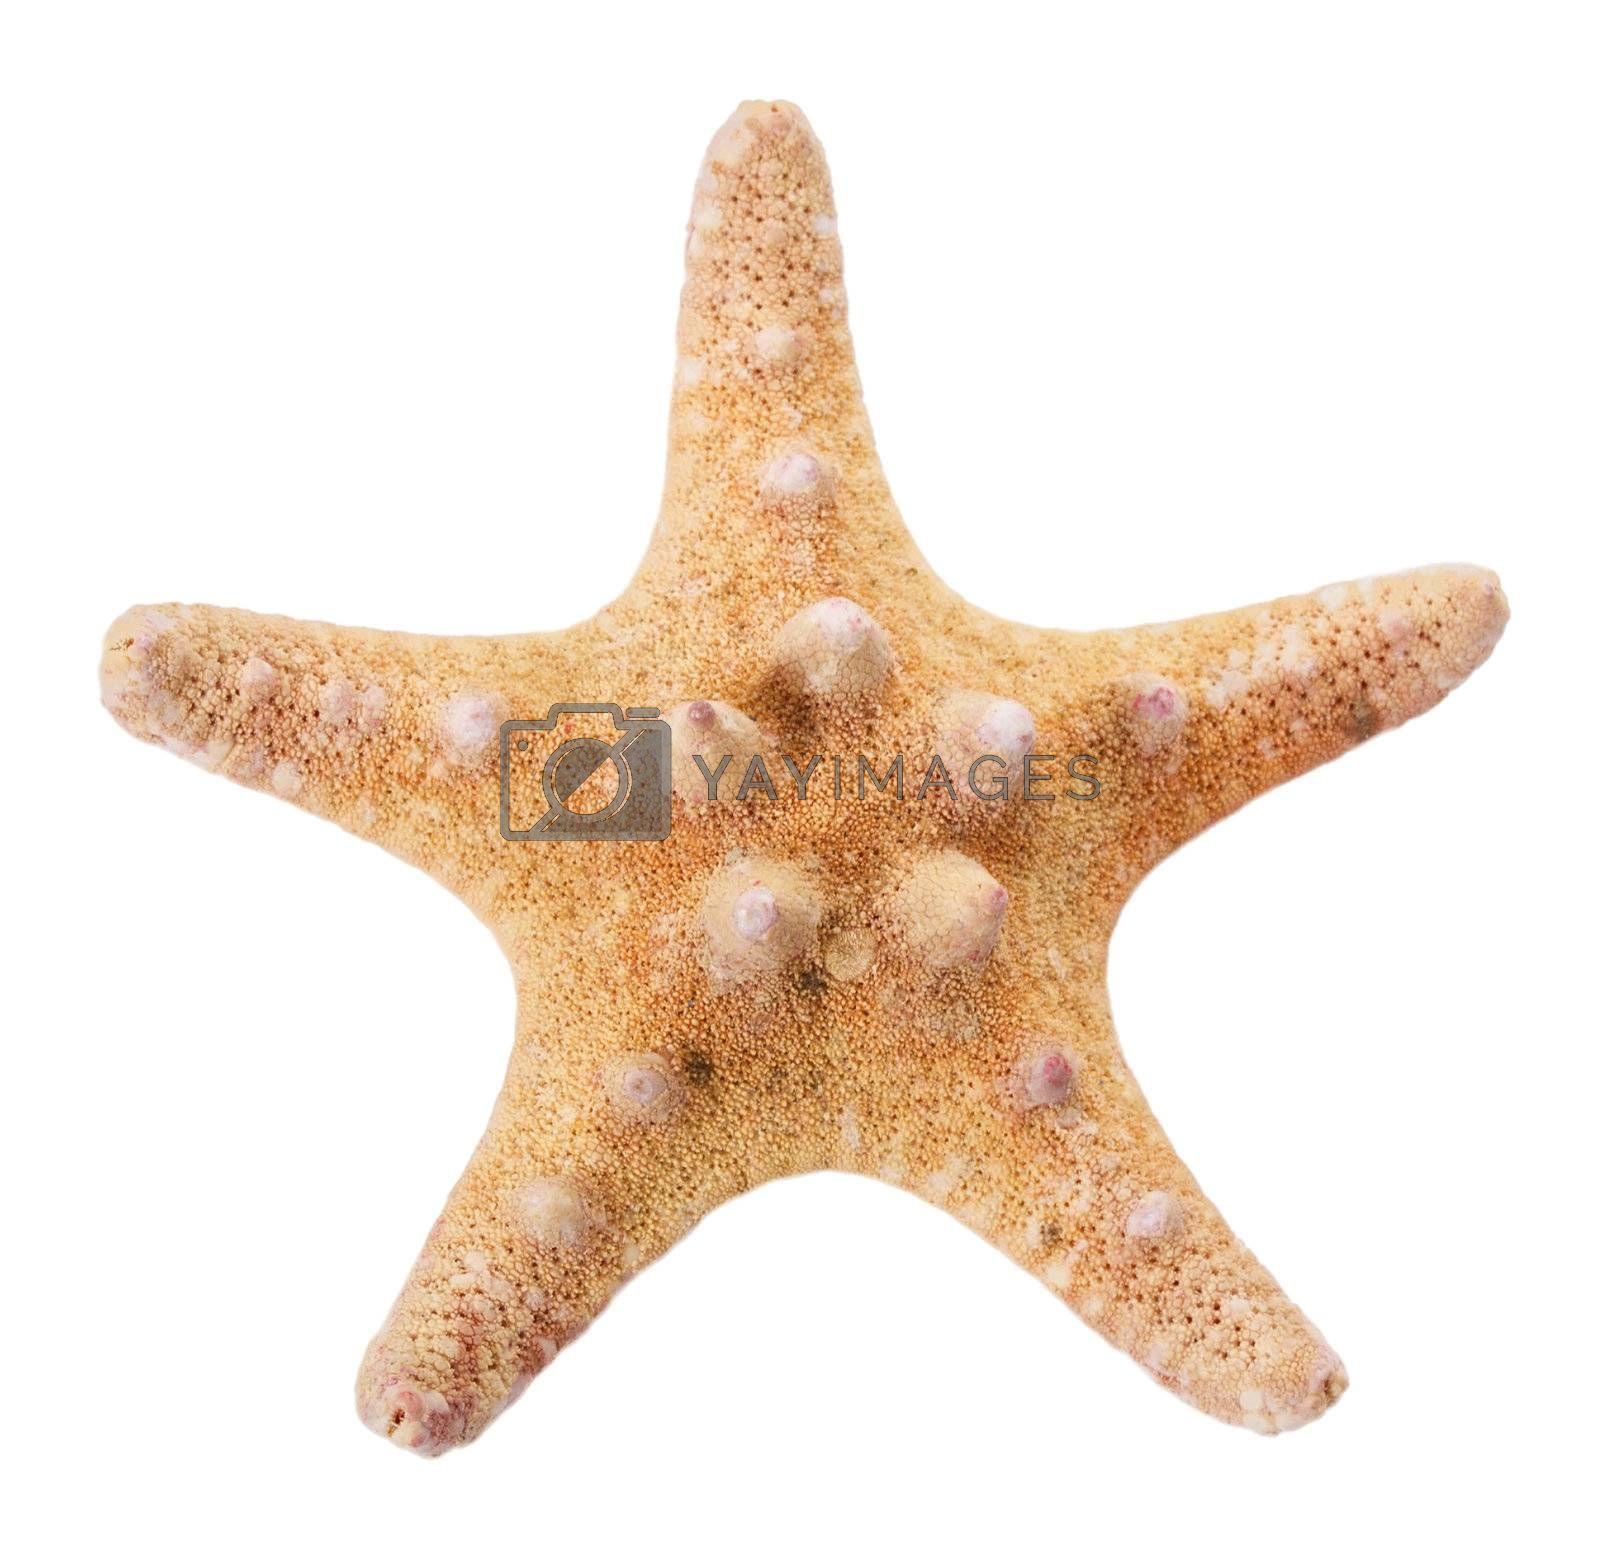 close-up starfish, isolated on white